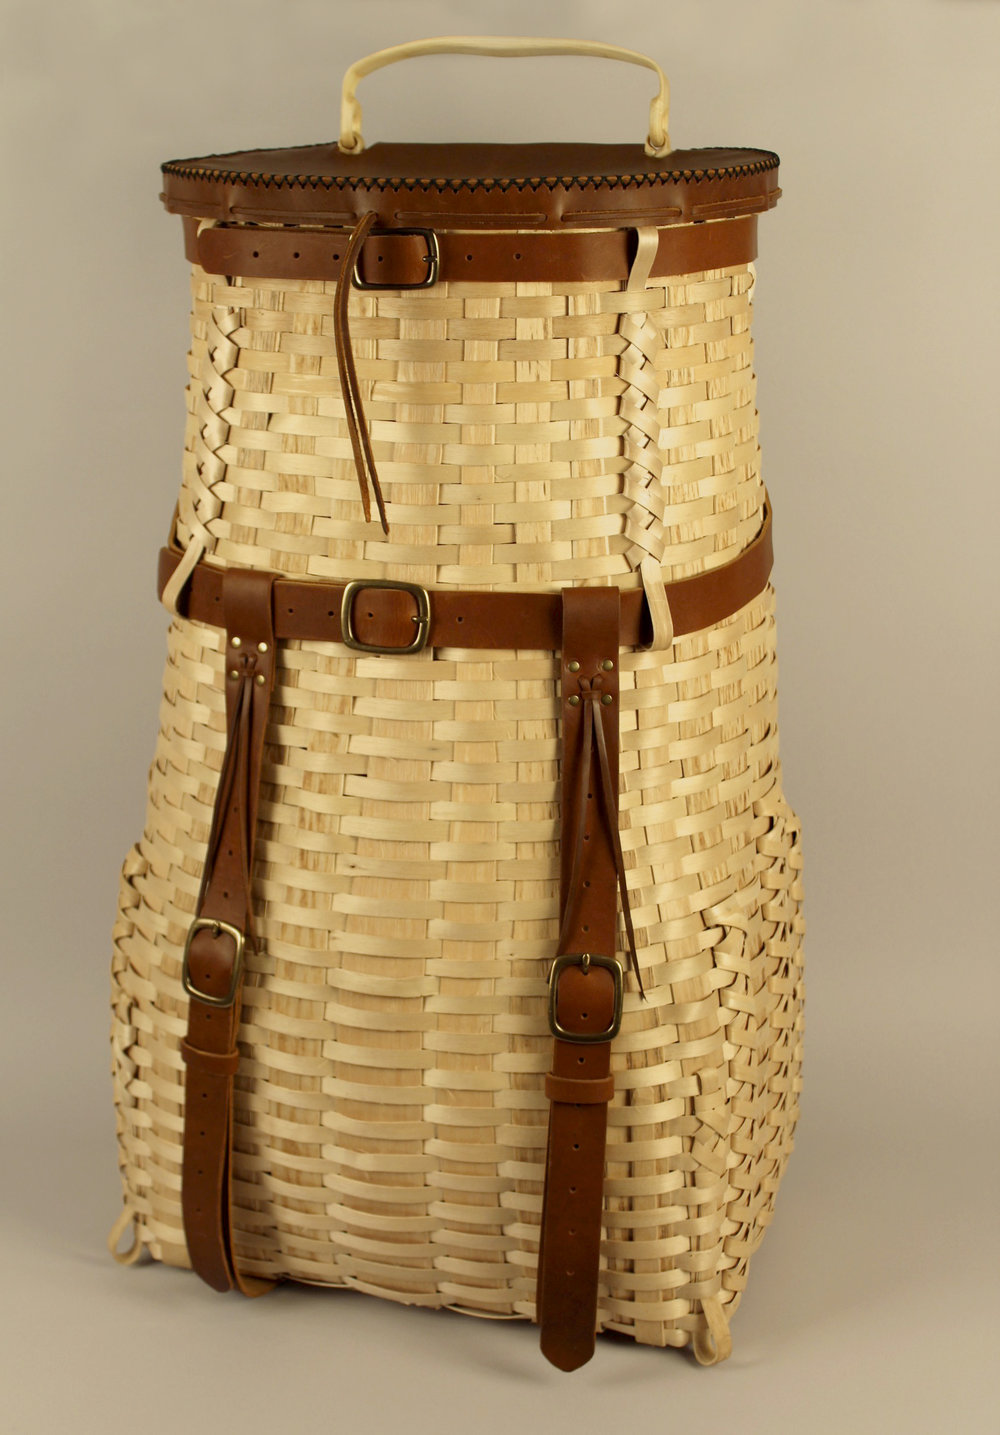 Nuhkomoss Packbasket, by Gabriel Frey, Passamaquoddy, is one of more than a dozen items available in the live auction.